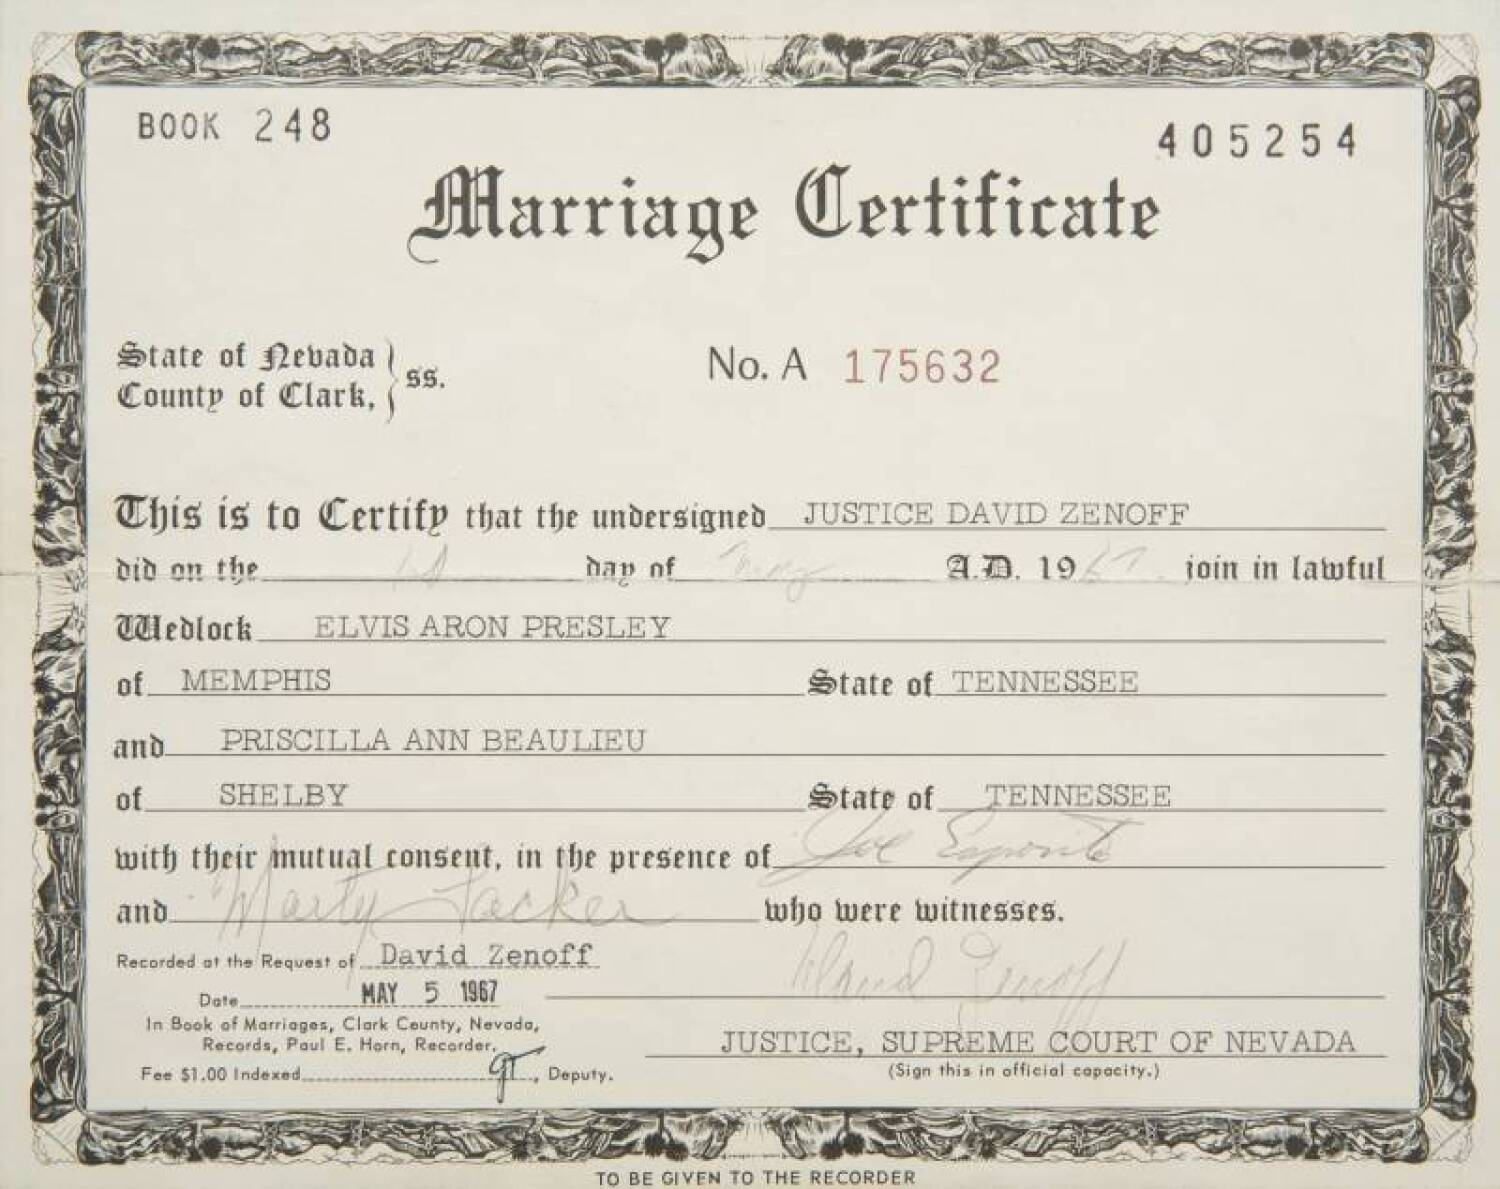 Marriage Certificate | 1967 Elvis And Priscilla Presley S Marriage Certificate Current